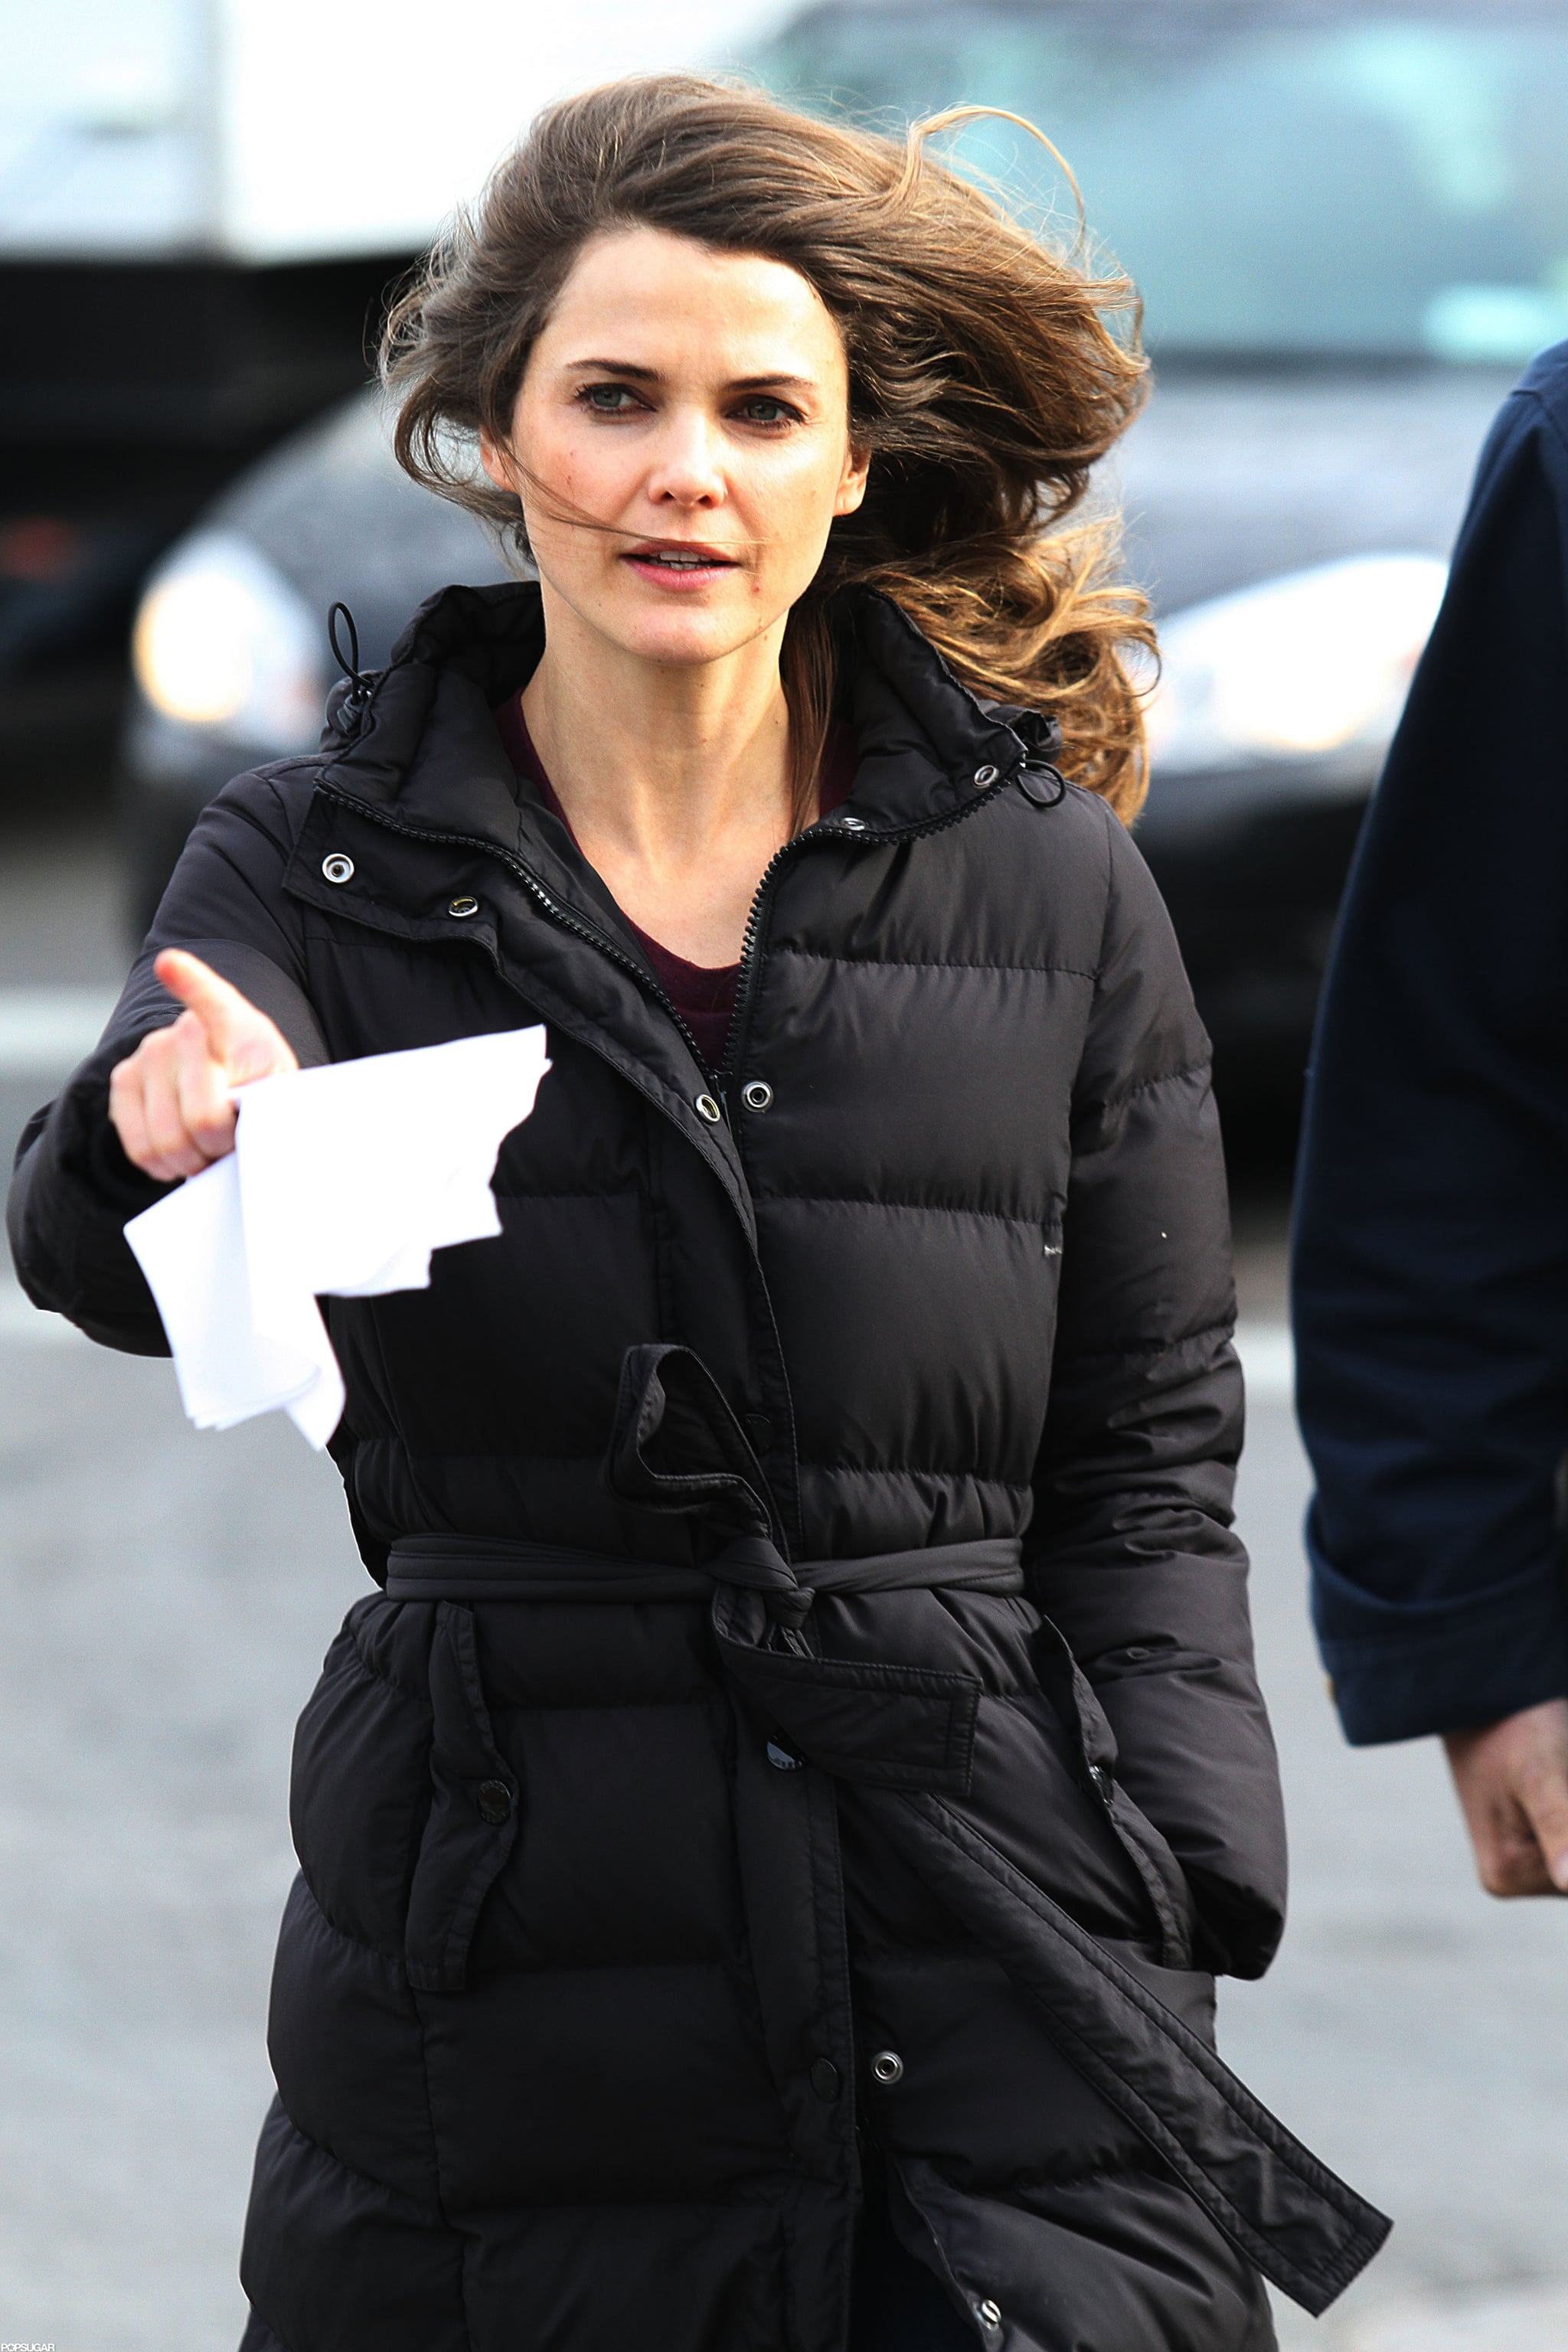 Keri Russell stepped onto set in a black jacket.